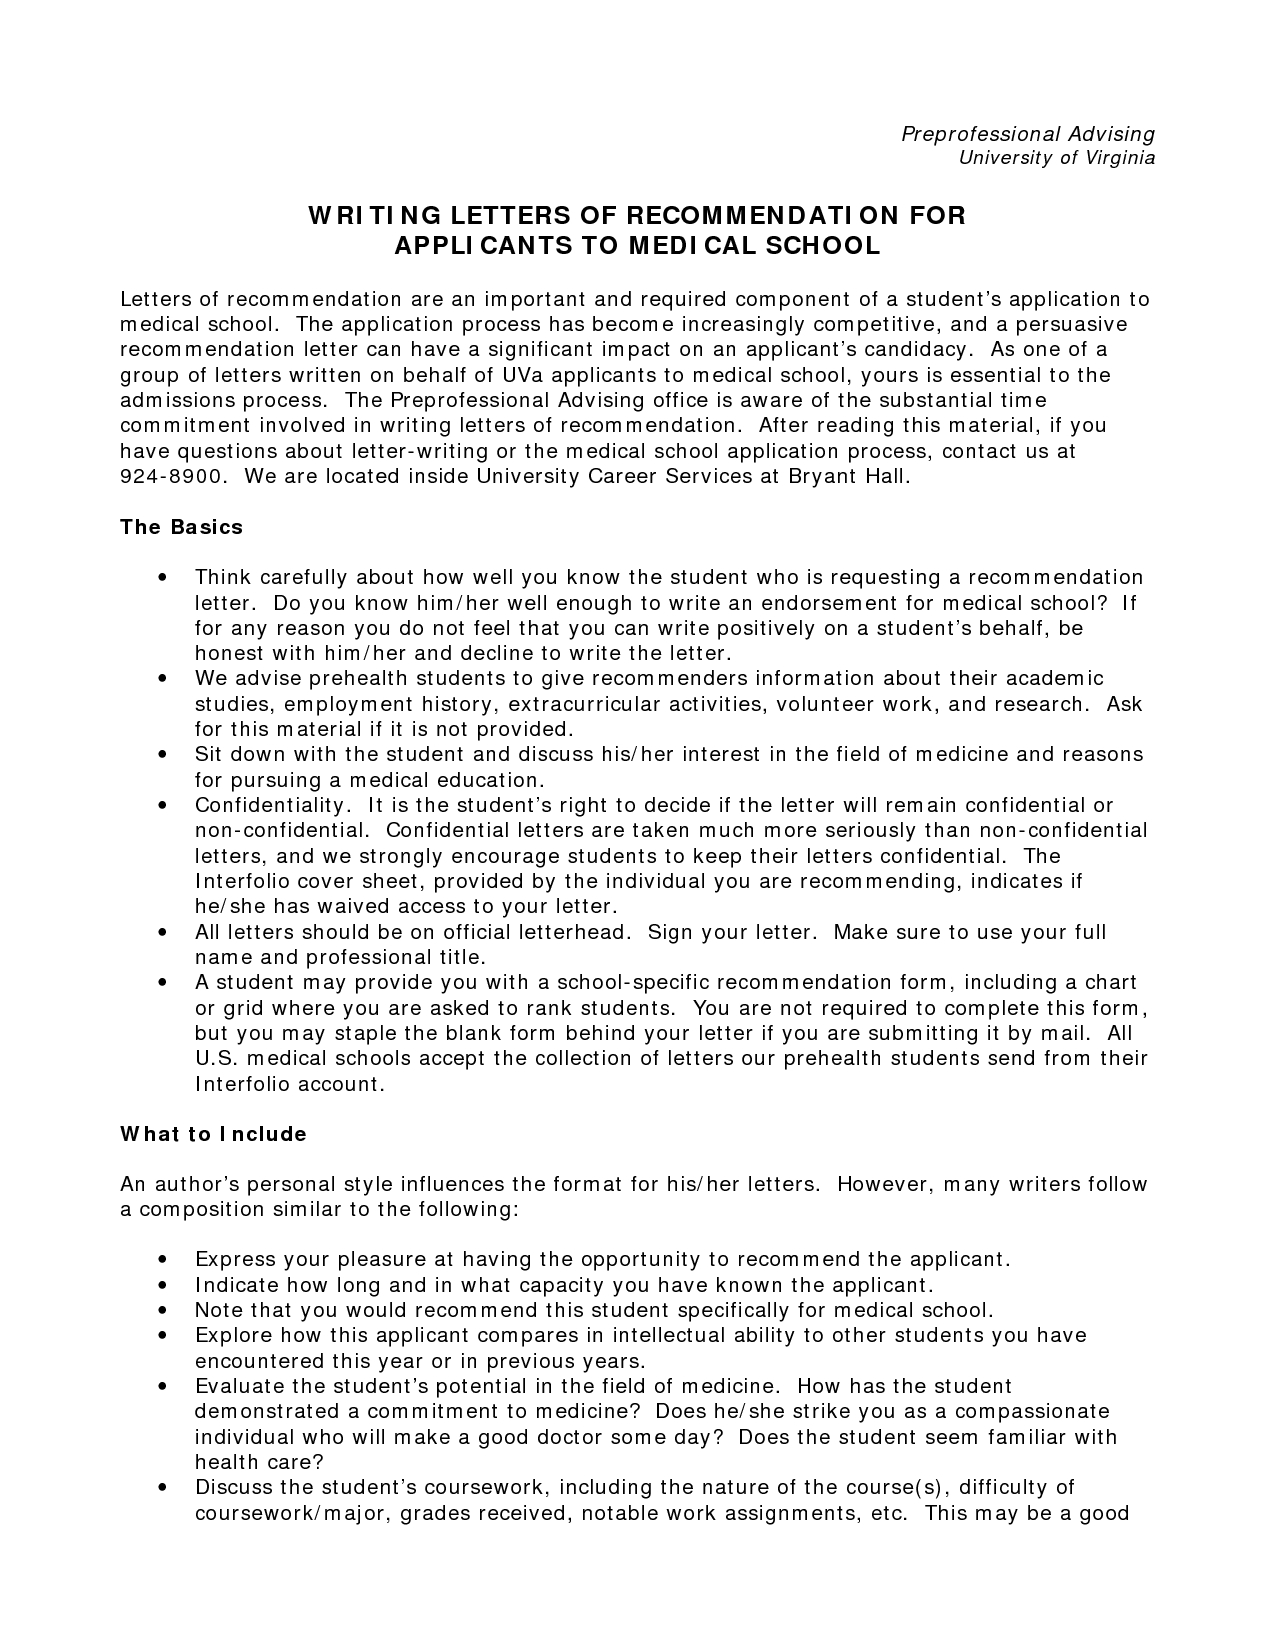 Template for Letter Of Recommendation for Medical School - Sample Character Reference Letter for School Admission